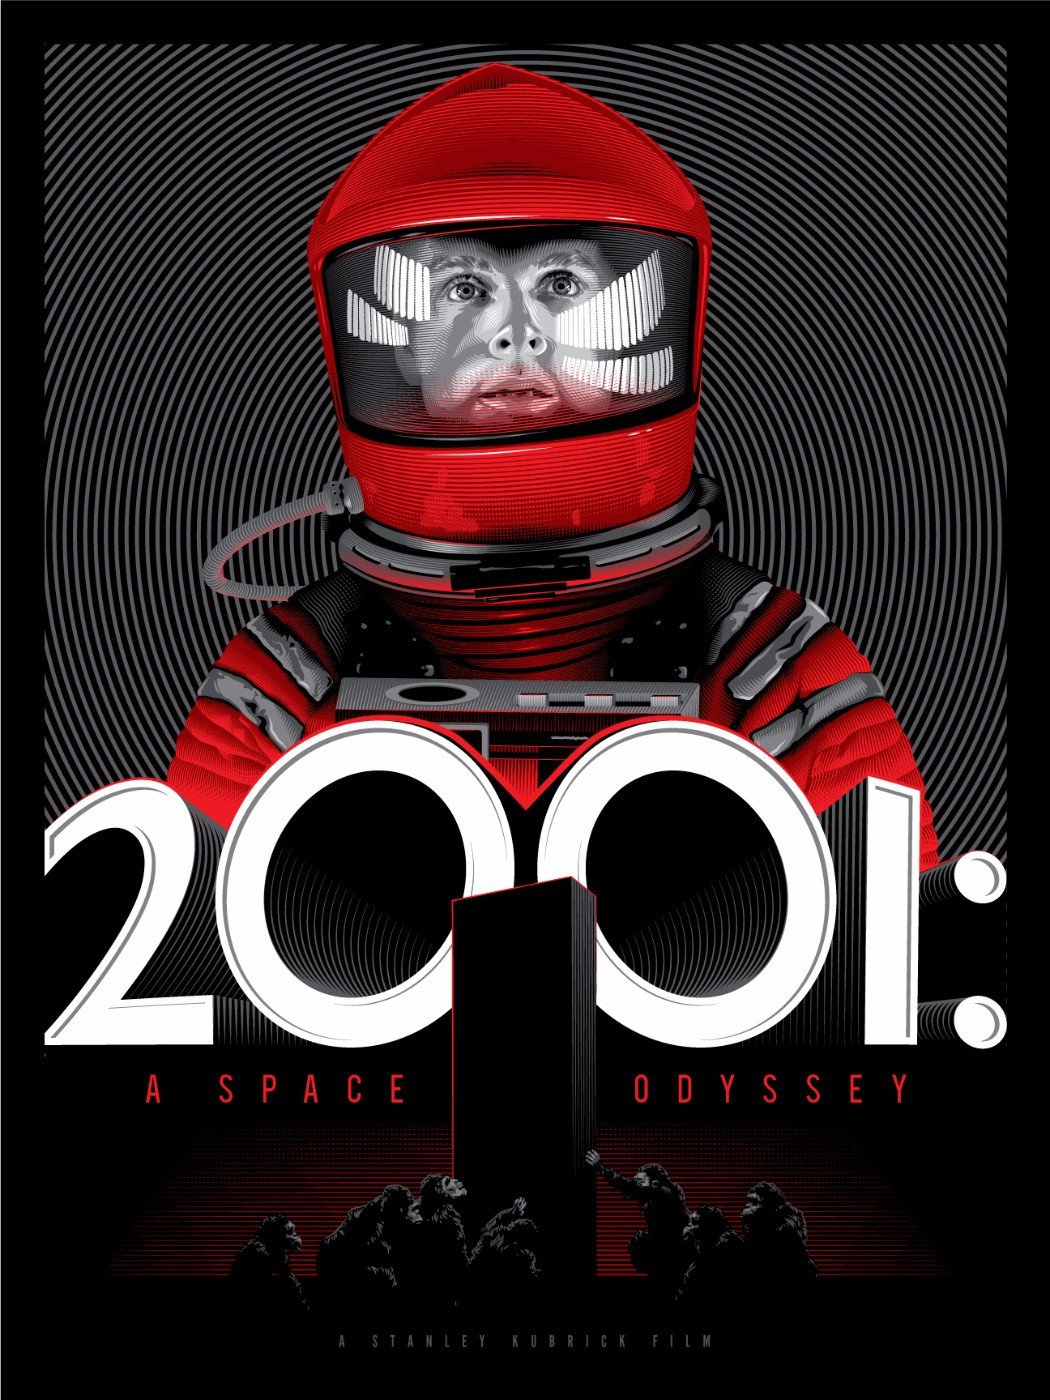 Graphic_Art_Poster_-_2001_Space_Odyssey_-_Hollywood_Collection_0f596cb8-f571-44aa-a934-64cb7a03ee90.jpg